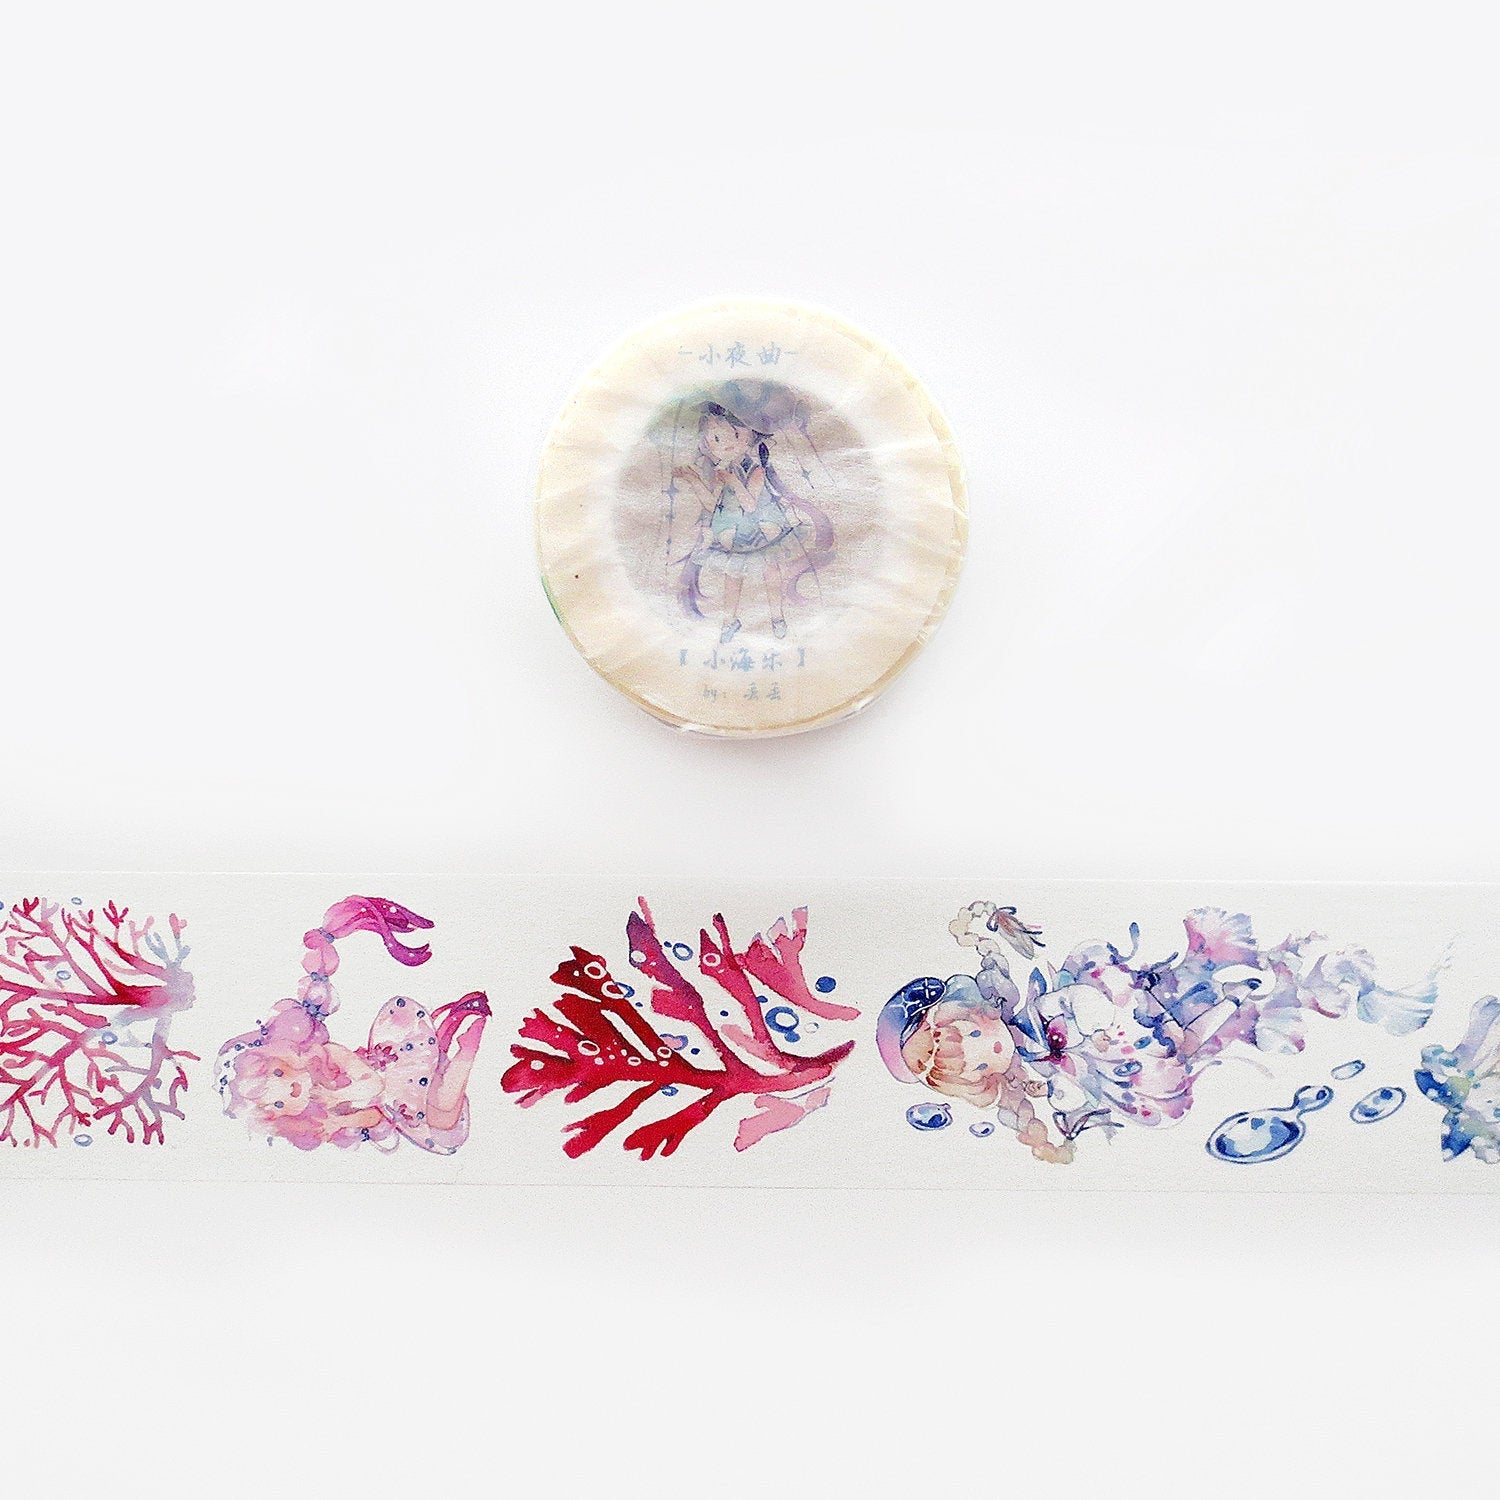 Jellyfish Girls 2 Washi Tape